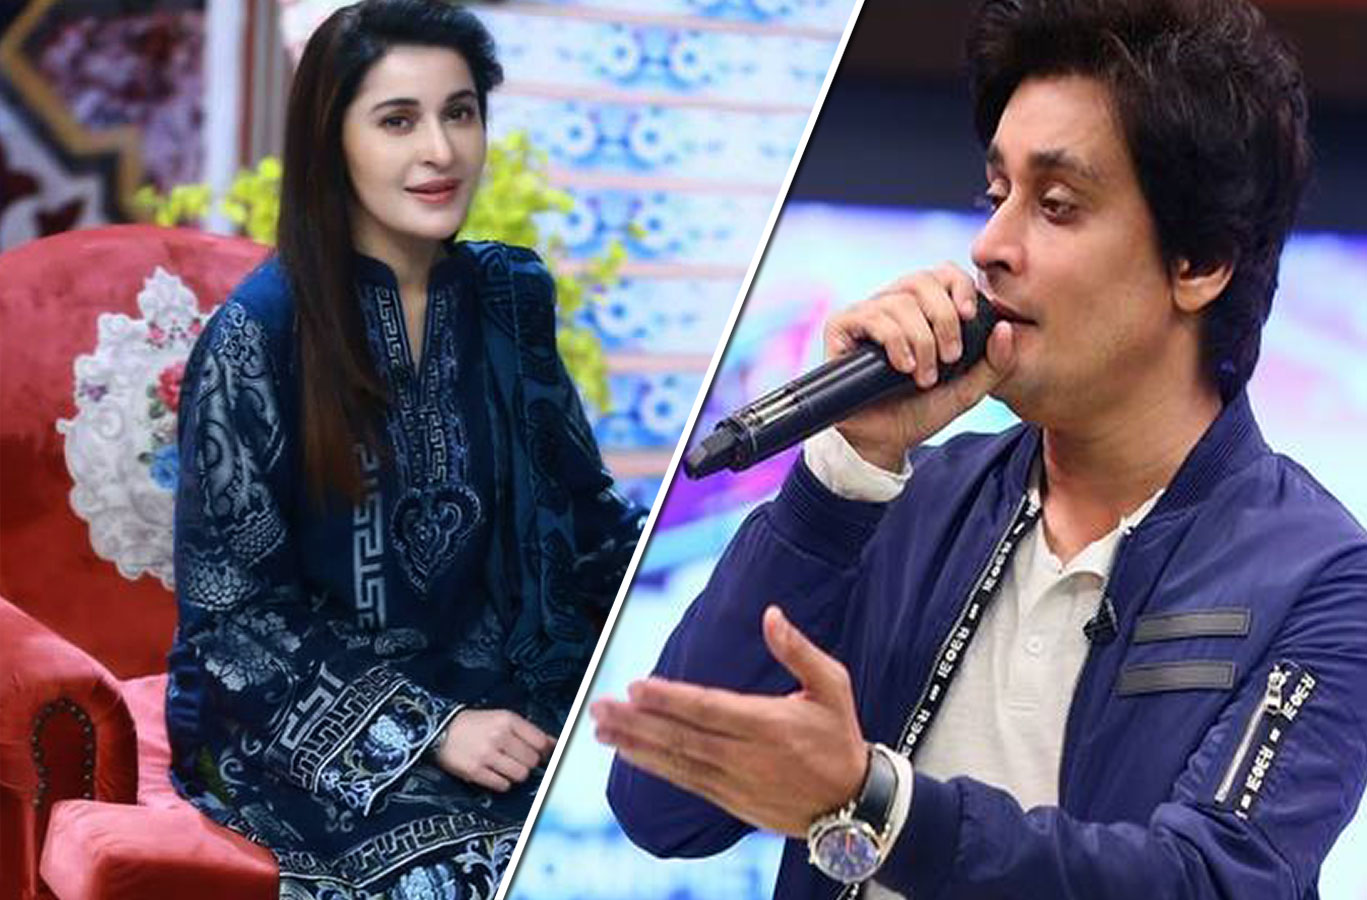 Sahir lodhi and wife - Search Picture Results - Funny Pictures Sahir lodhi family pictures